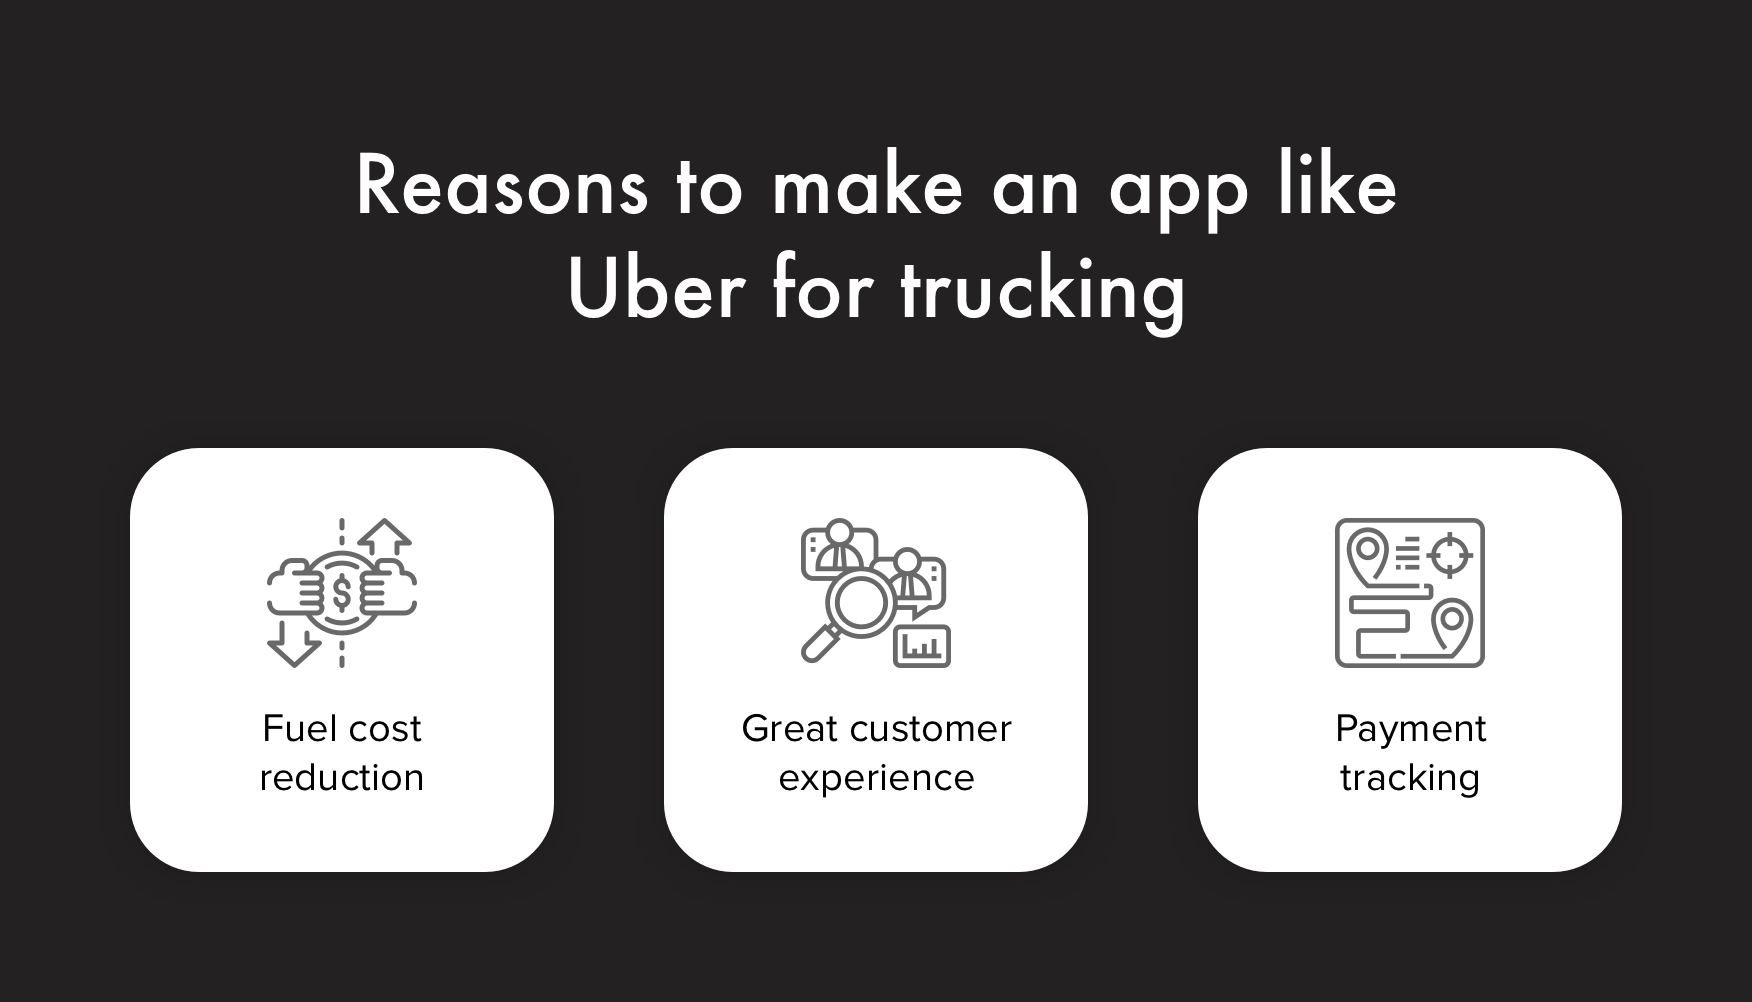 Reasons to make an app like Uber for trucking